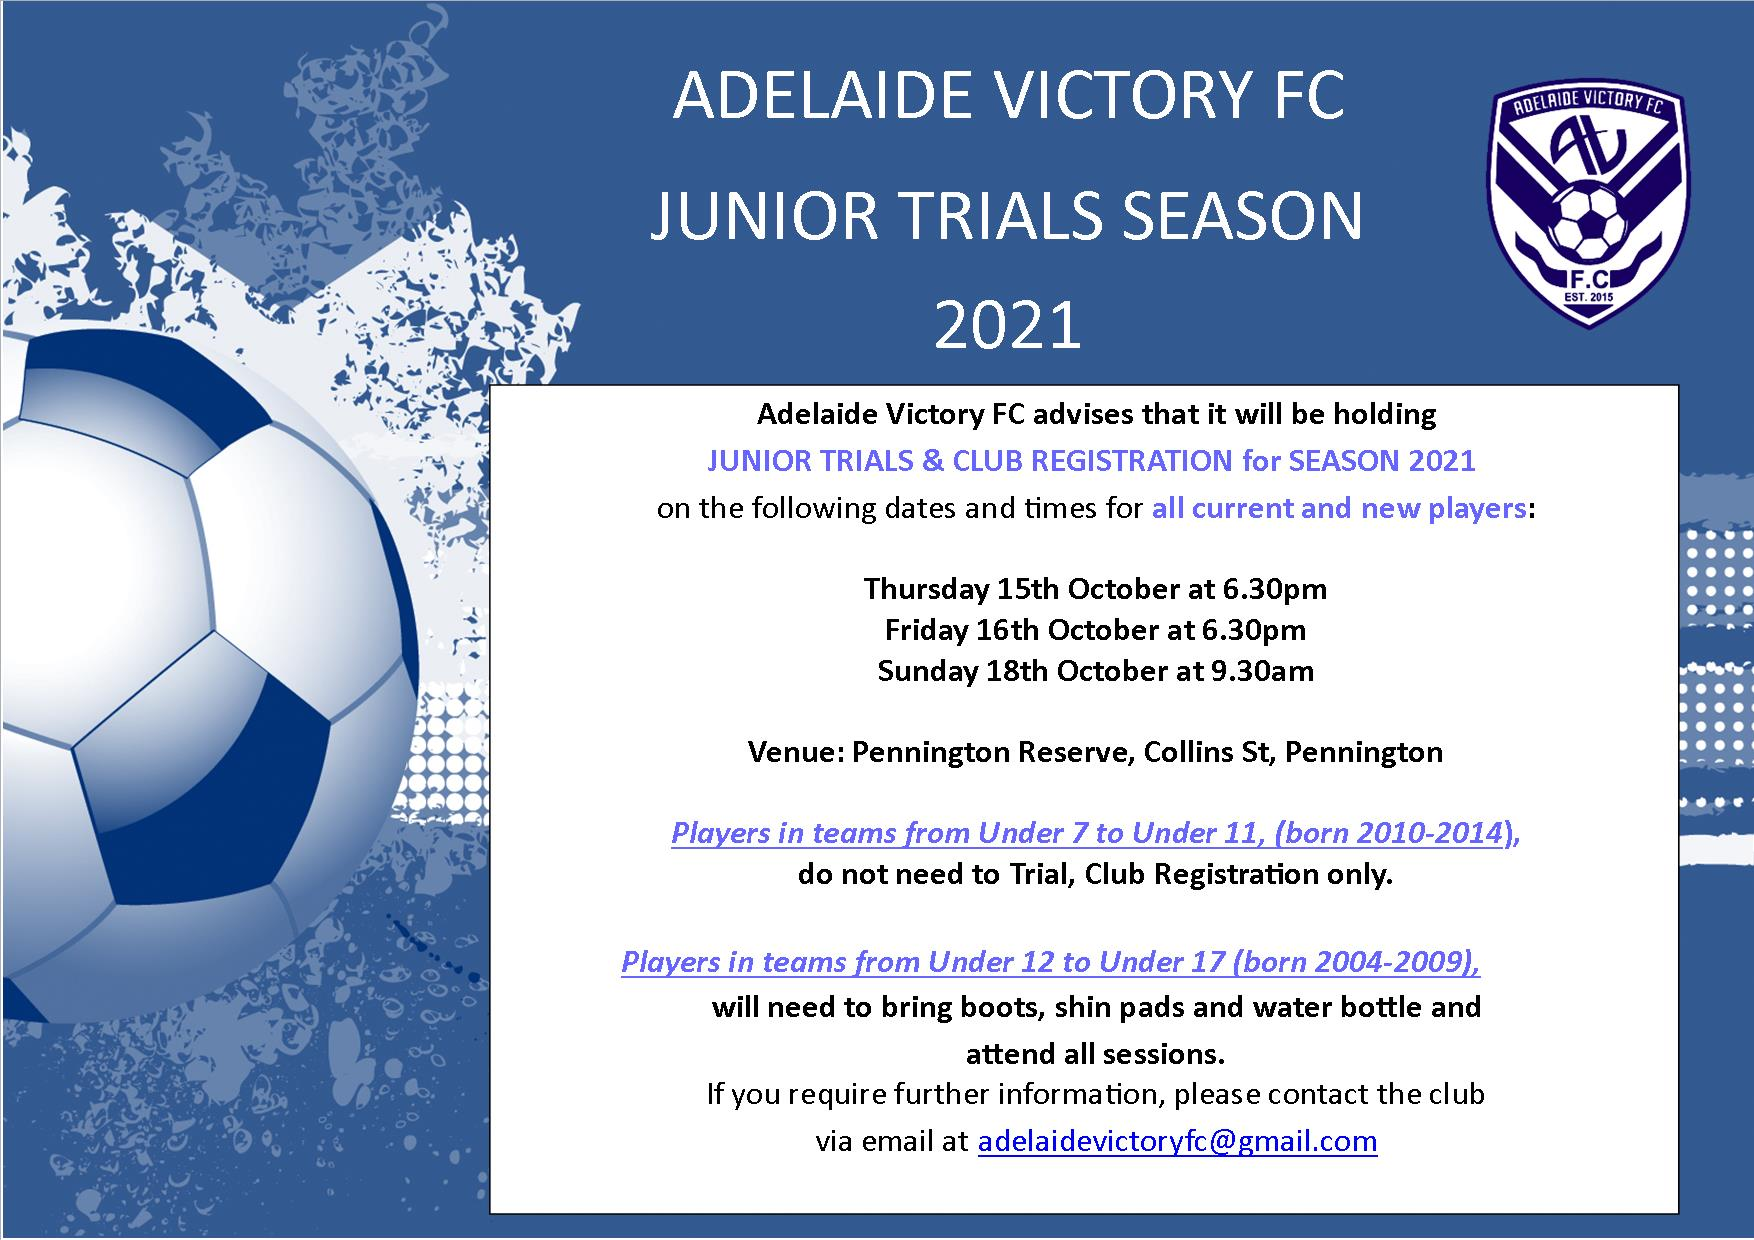 JUNIOR TRIAL AD